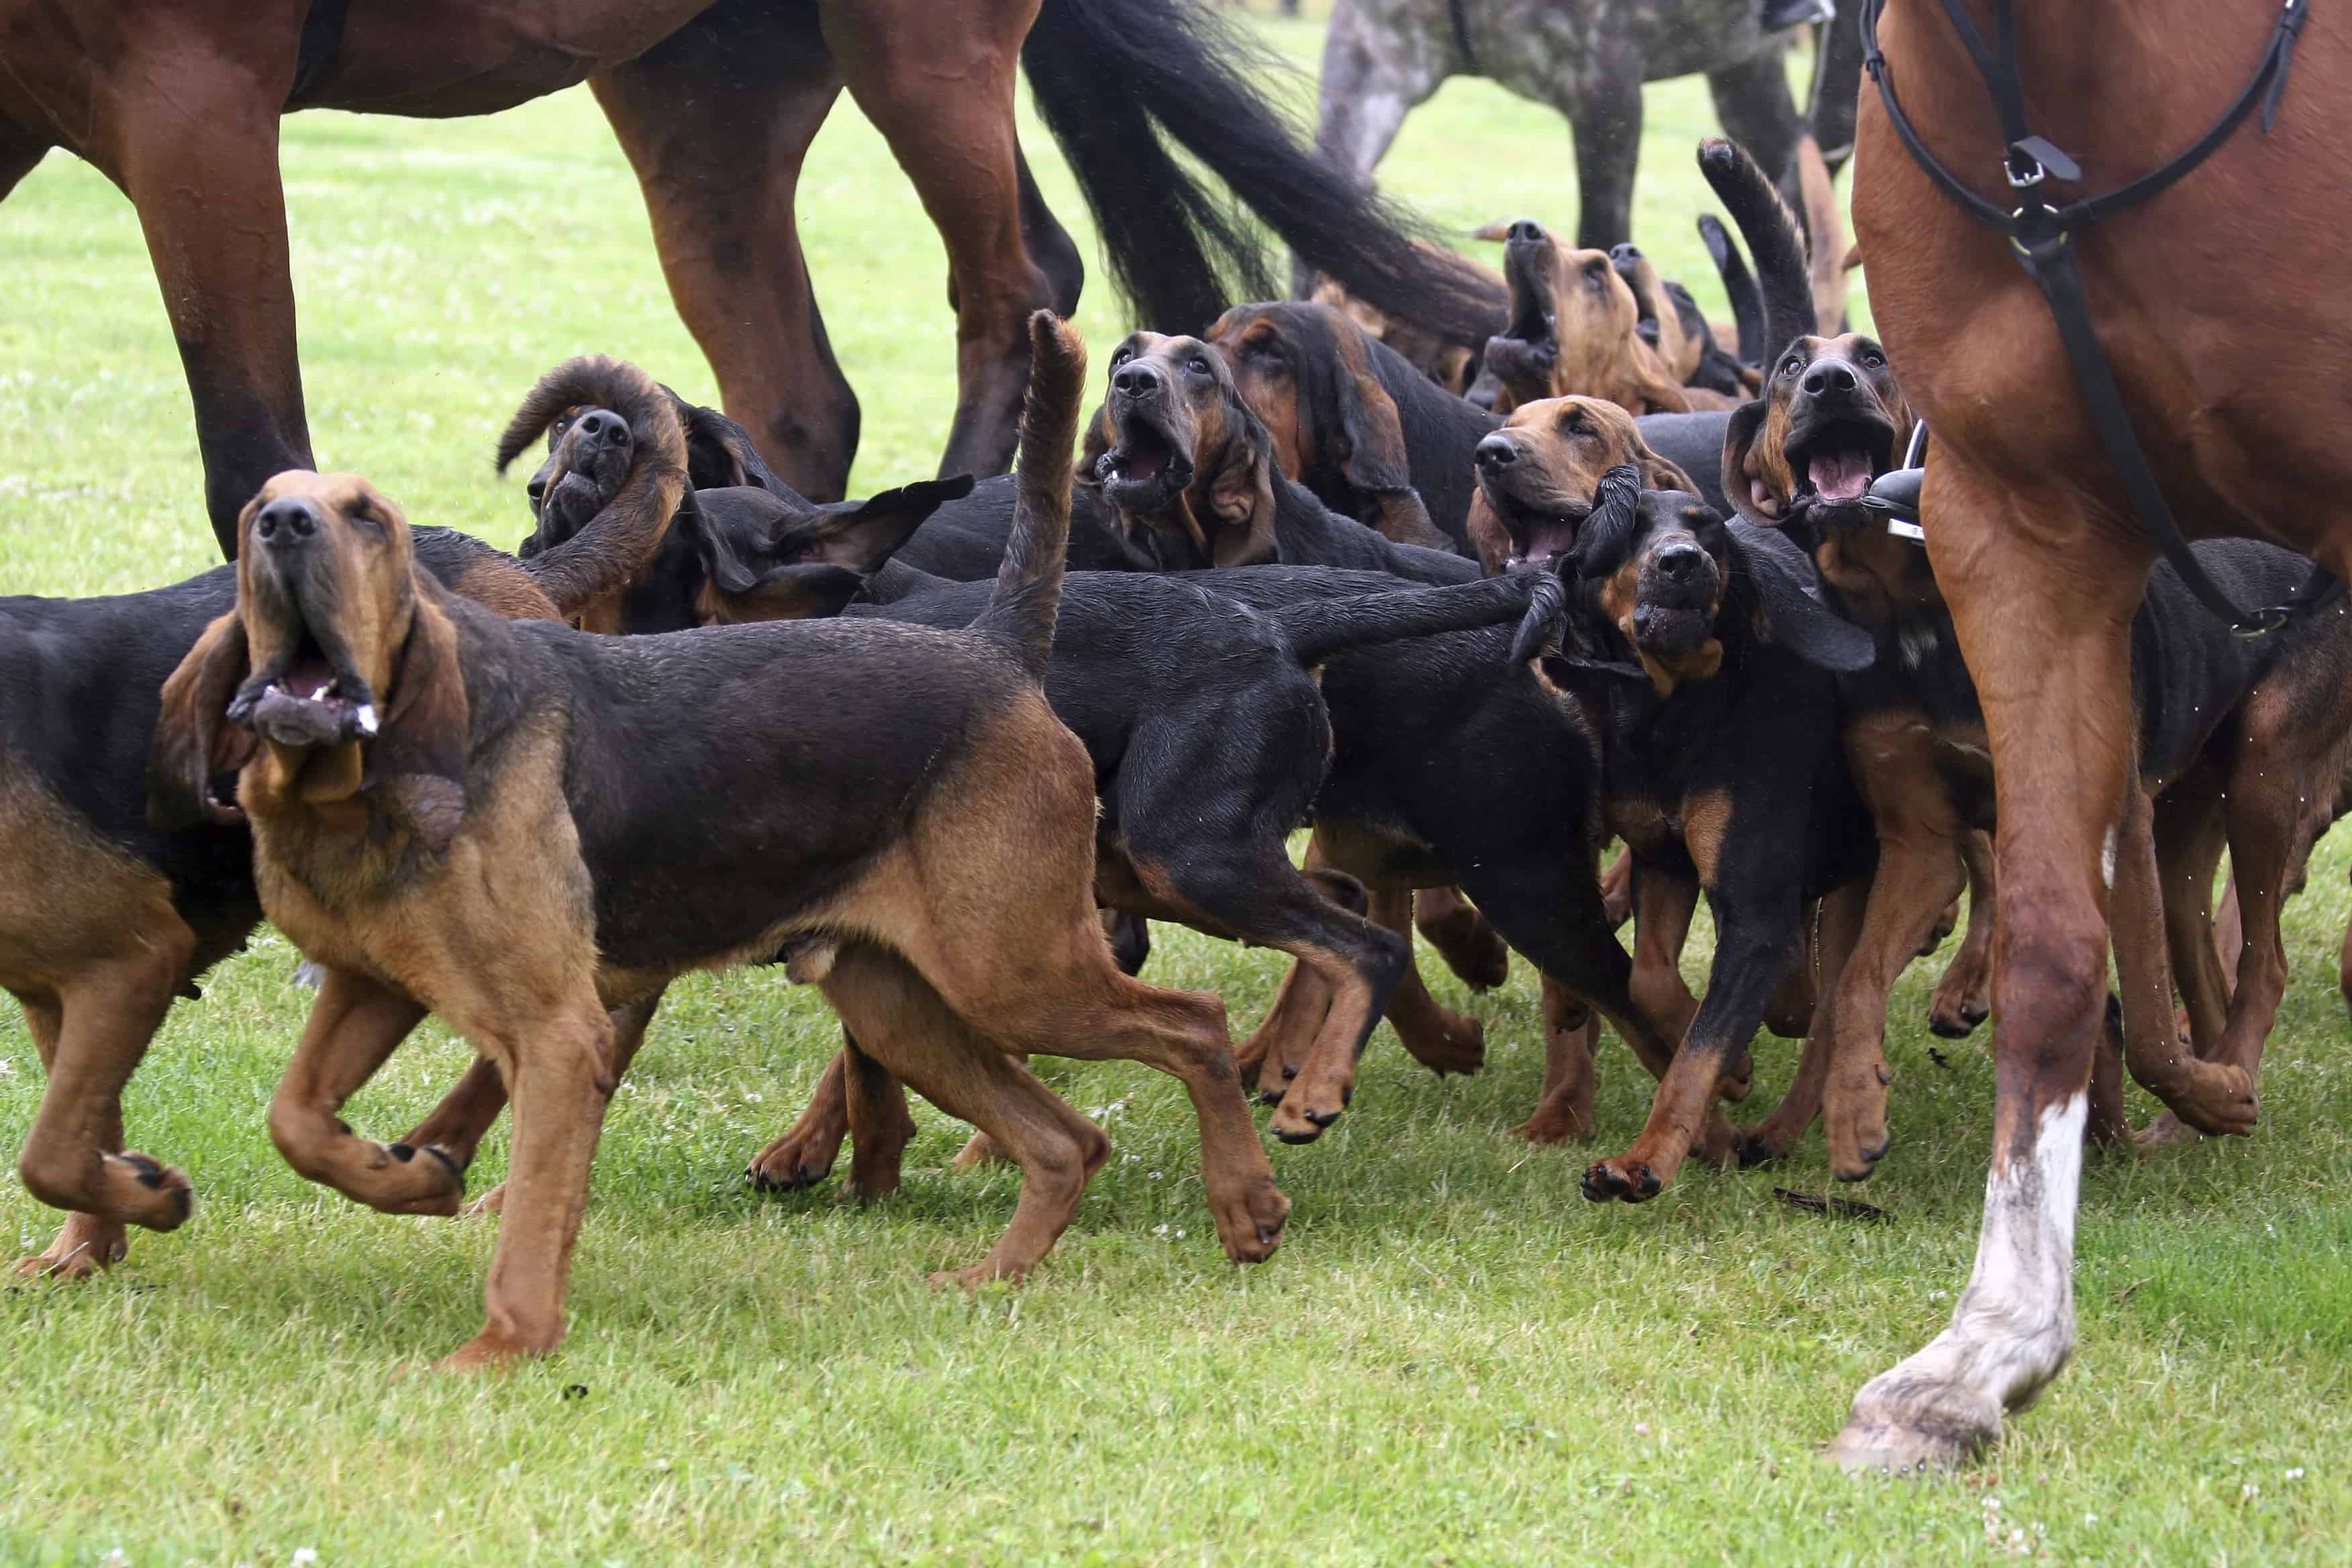 Bloodhounds are energetic, focused trailing dogs